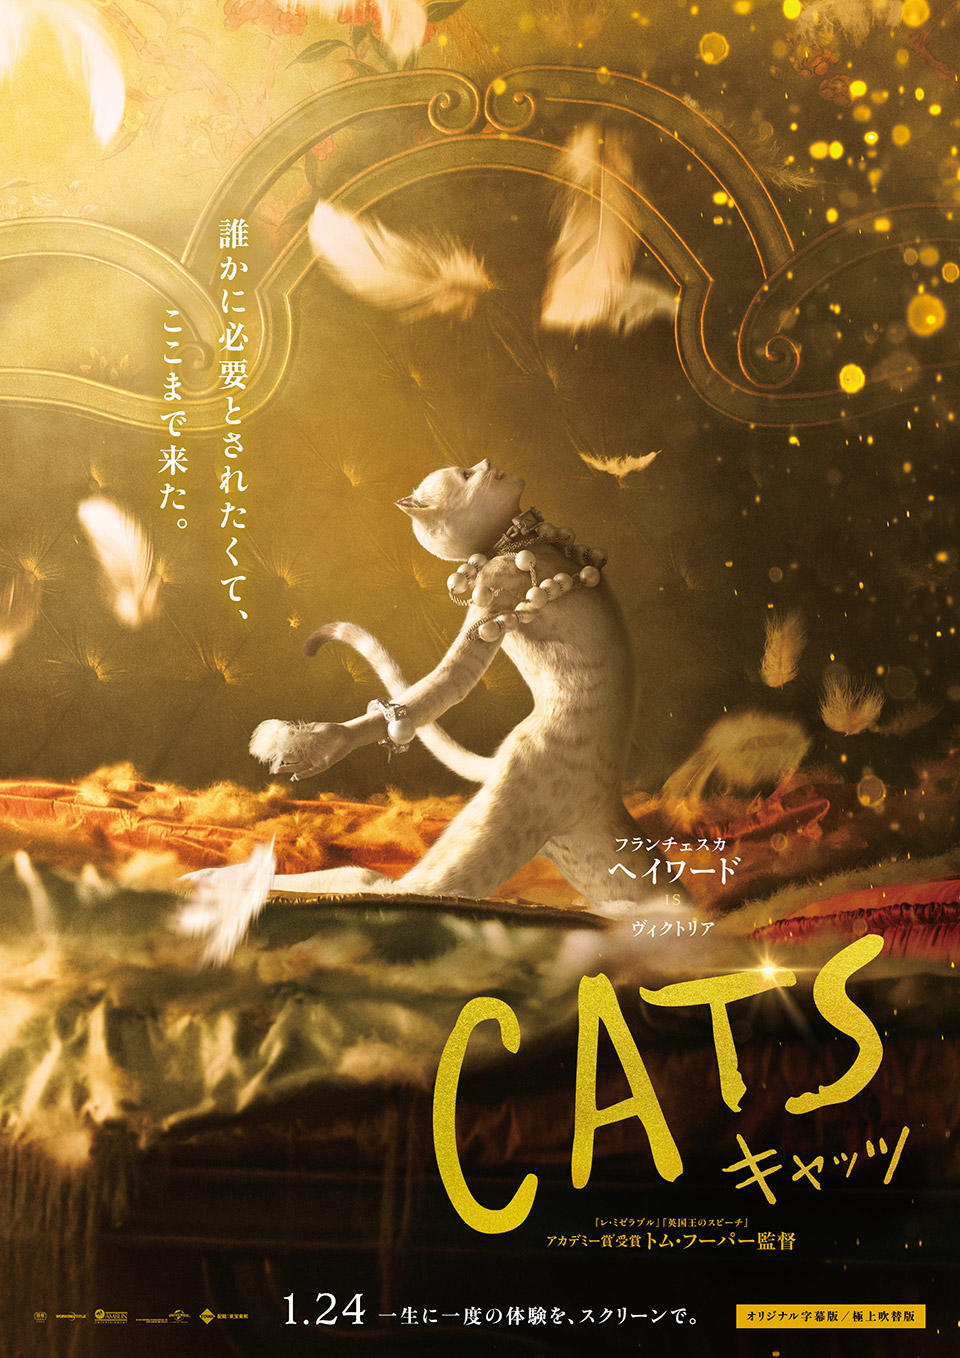 (c)-2019-Universal-Pictures.-All-Rights-Reserved.CATS_poster_VICTORIA_Ffix_ol.jpg